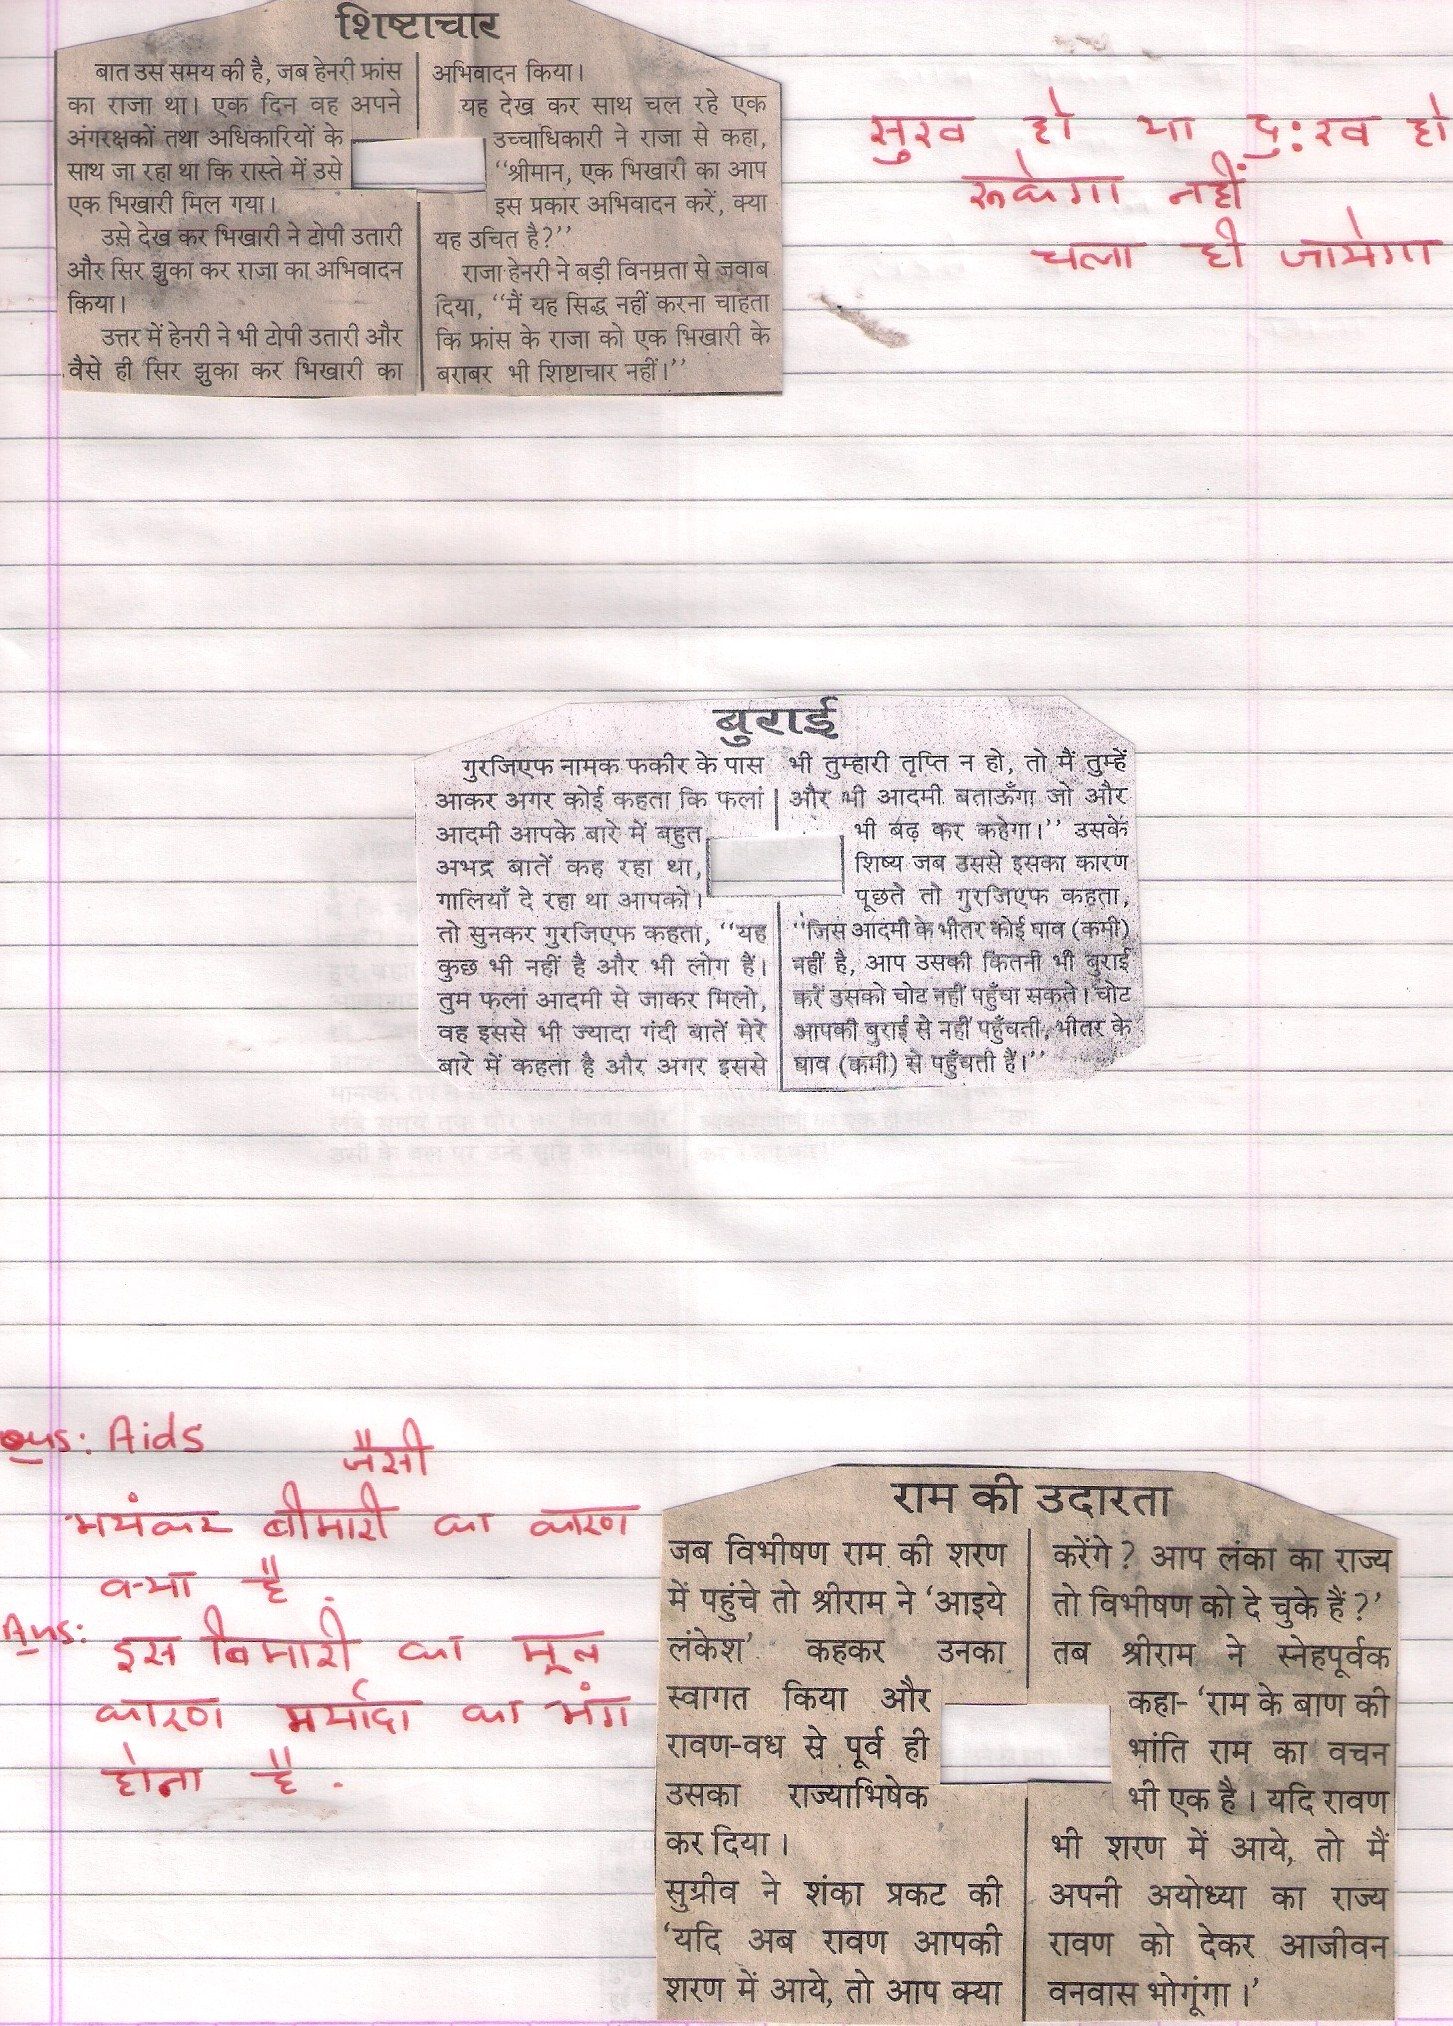 nibandh on adarsha vidyarthi in hindi Modos de tema adarsh vidyarthi essay in hindi bb:wik maupersomo127 member.